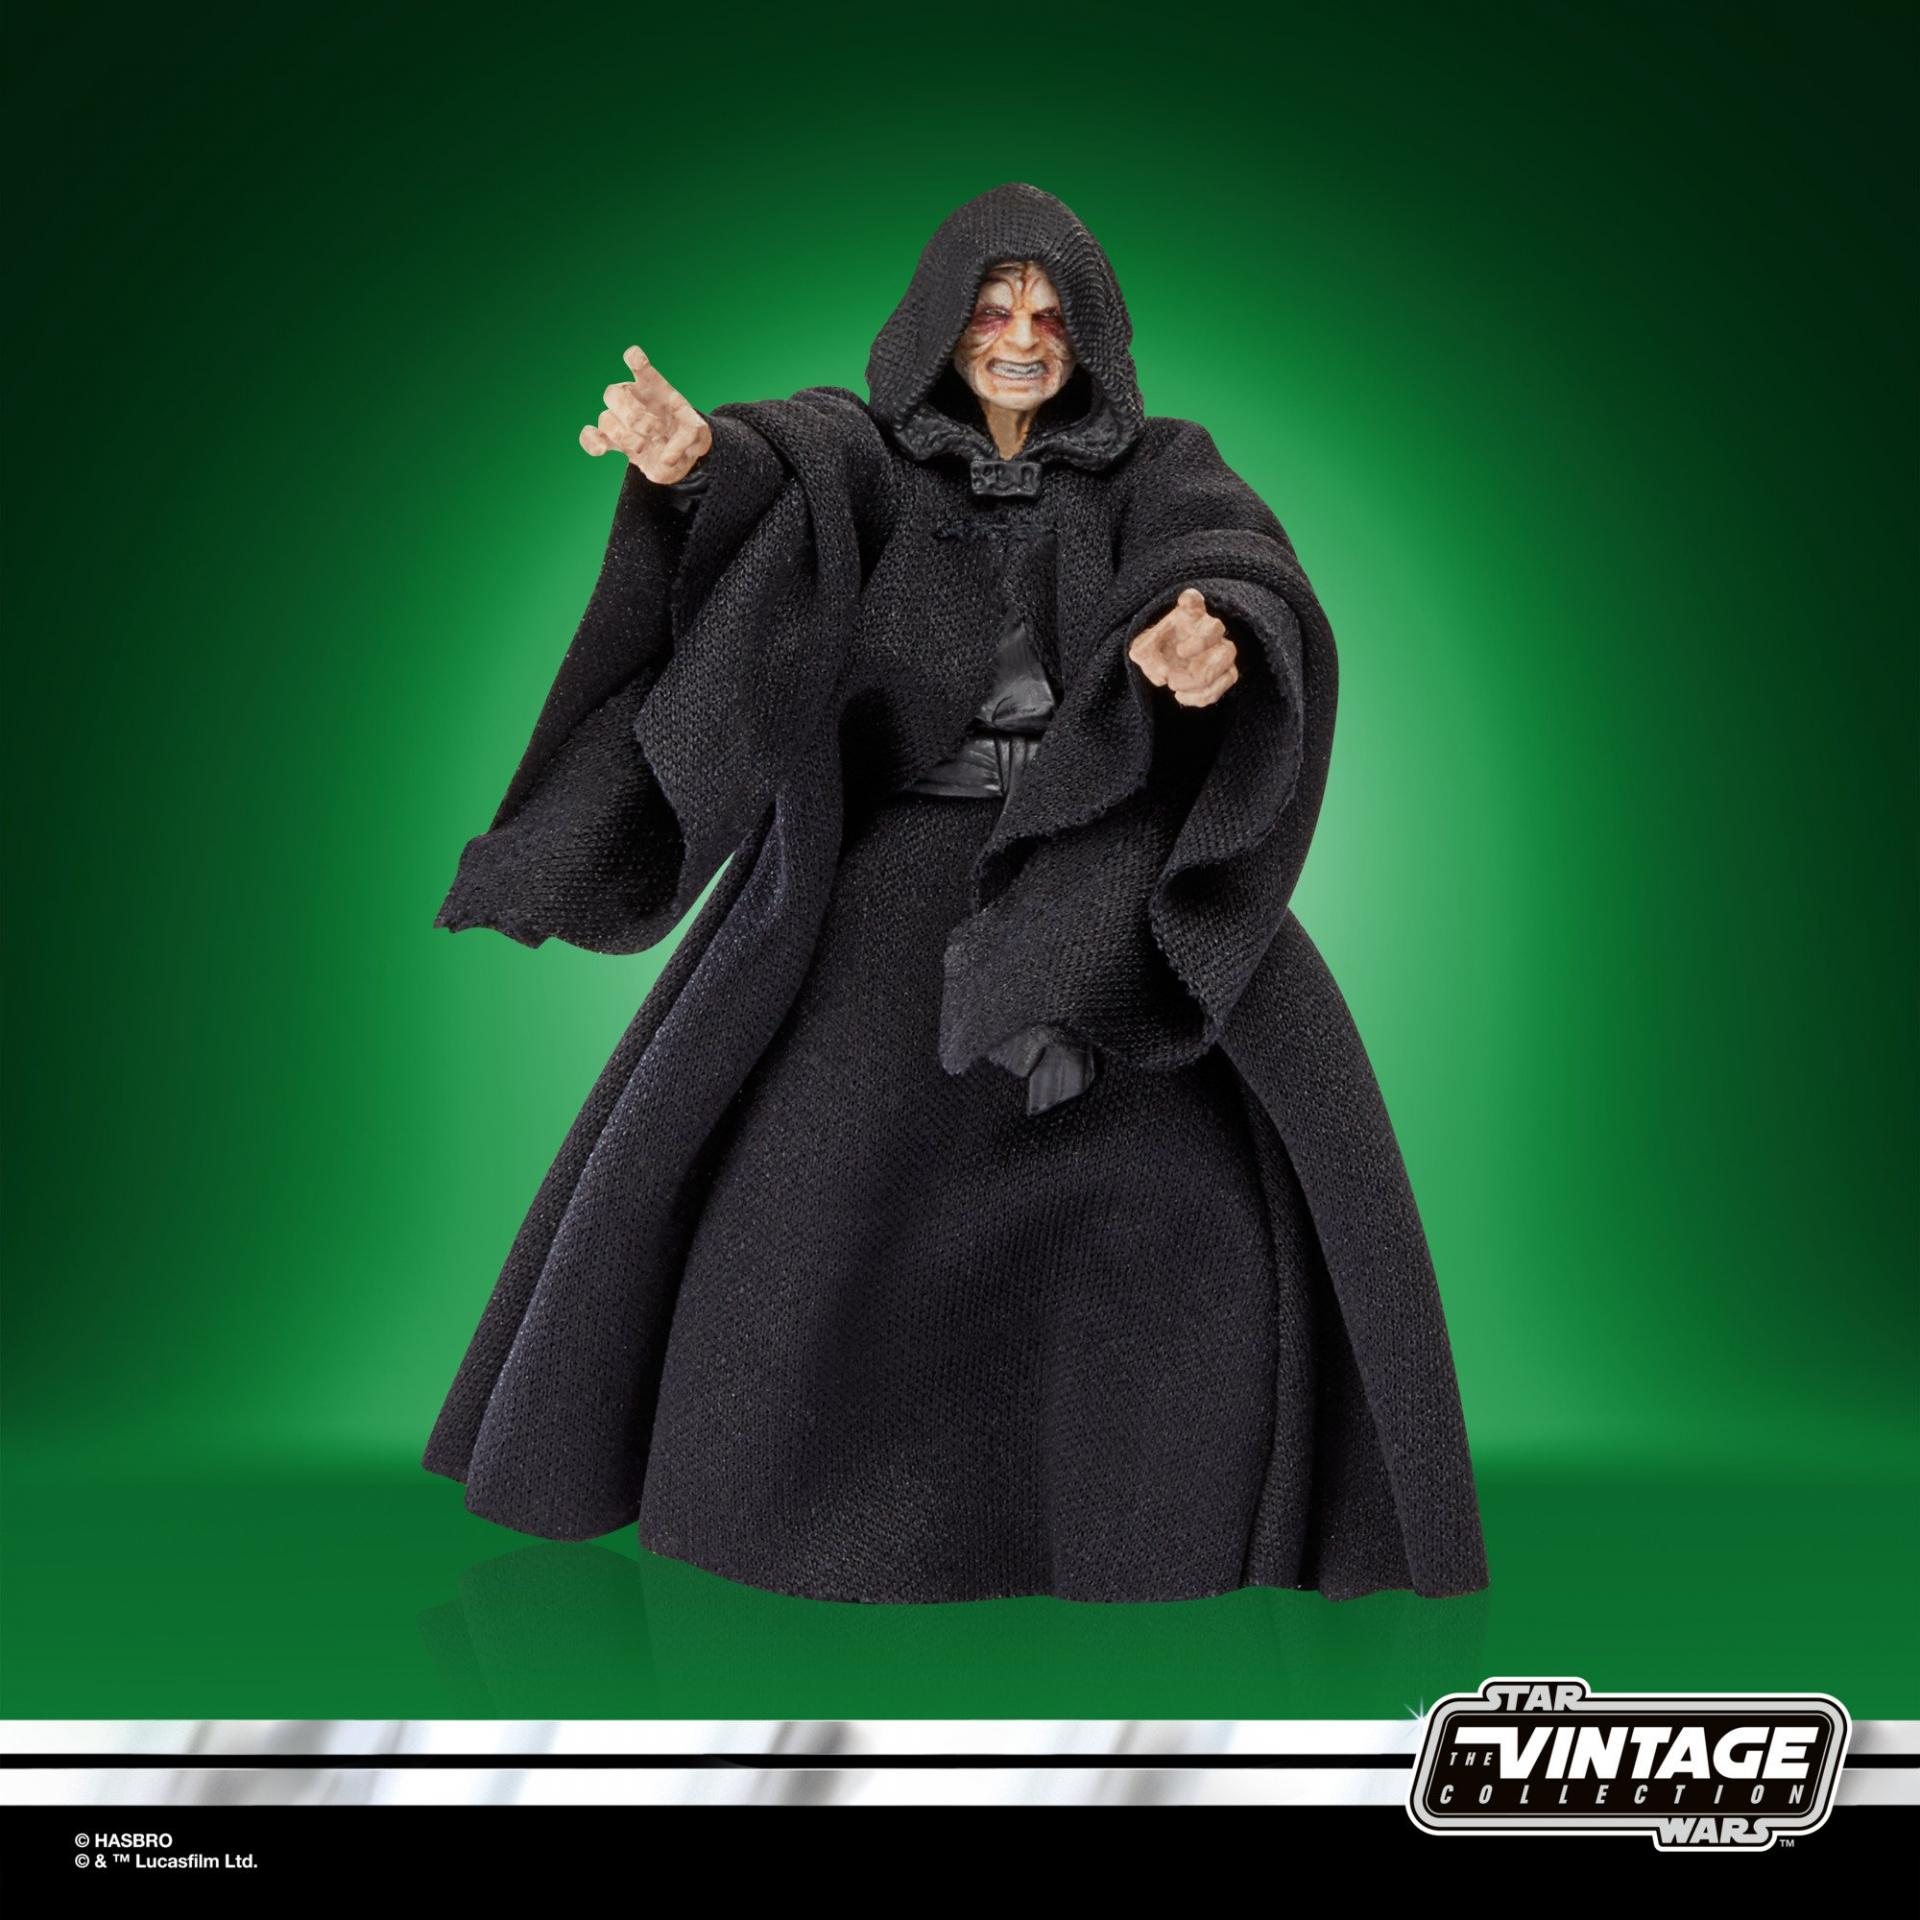 Star wars the vintage collection the emperor6